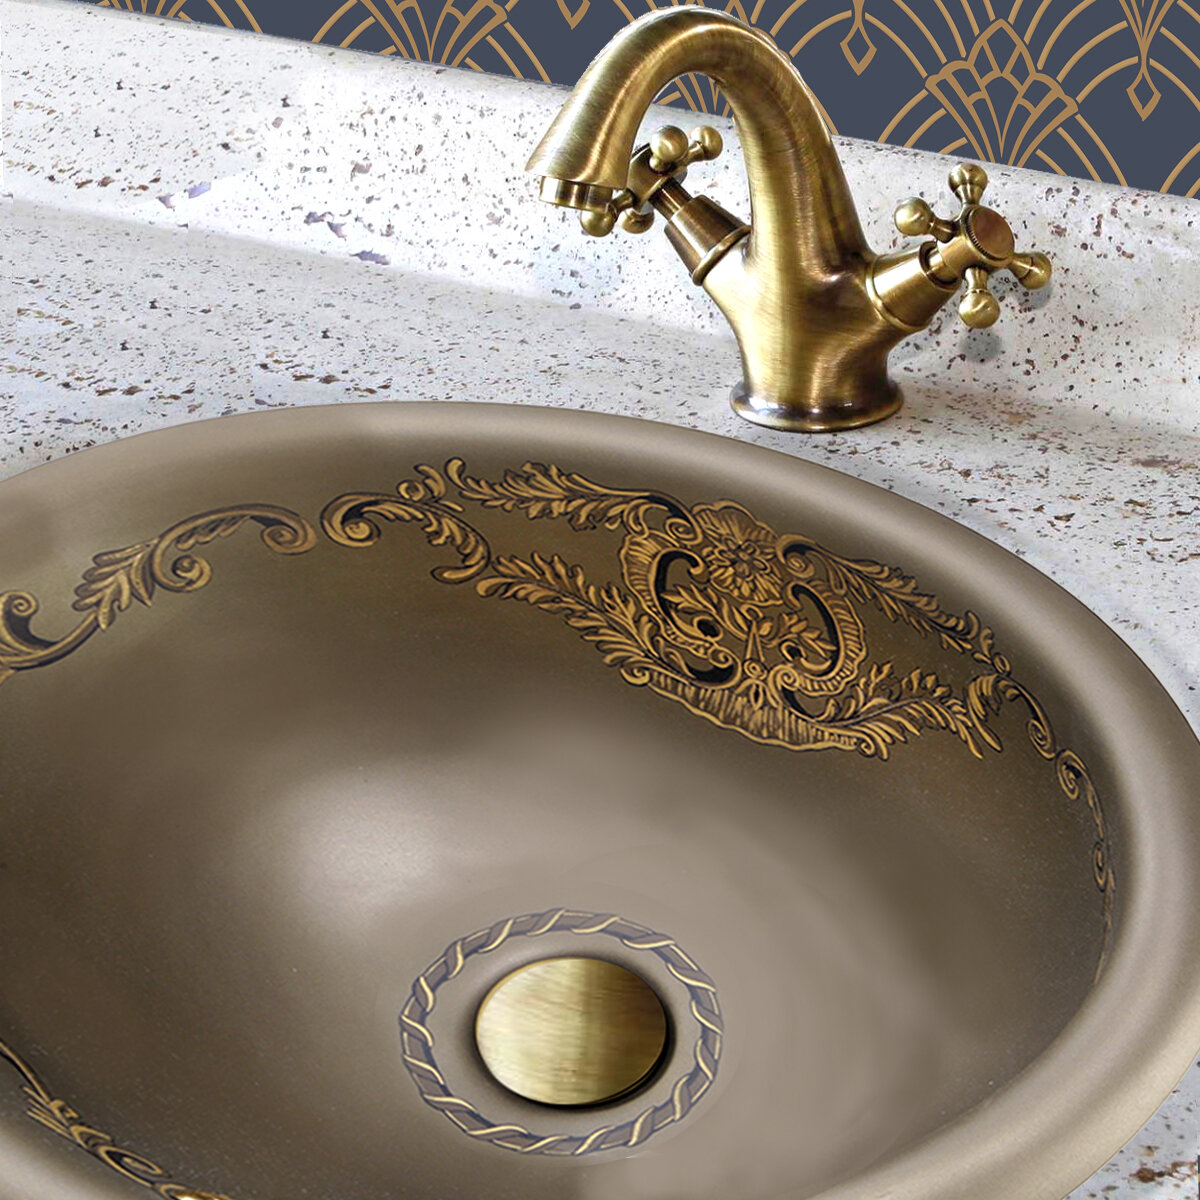 Regatta Ceramic Oval Drop-In Bathroom Sink with Overflow